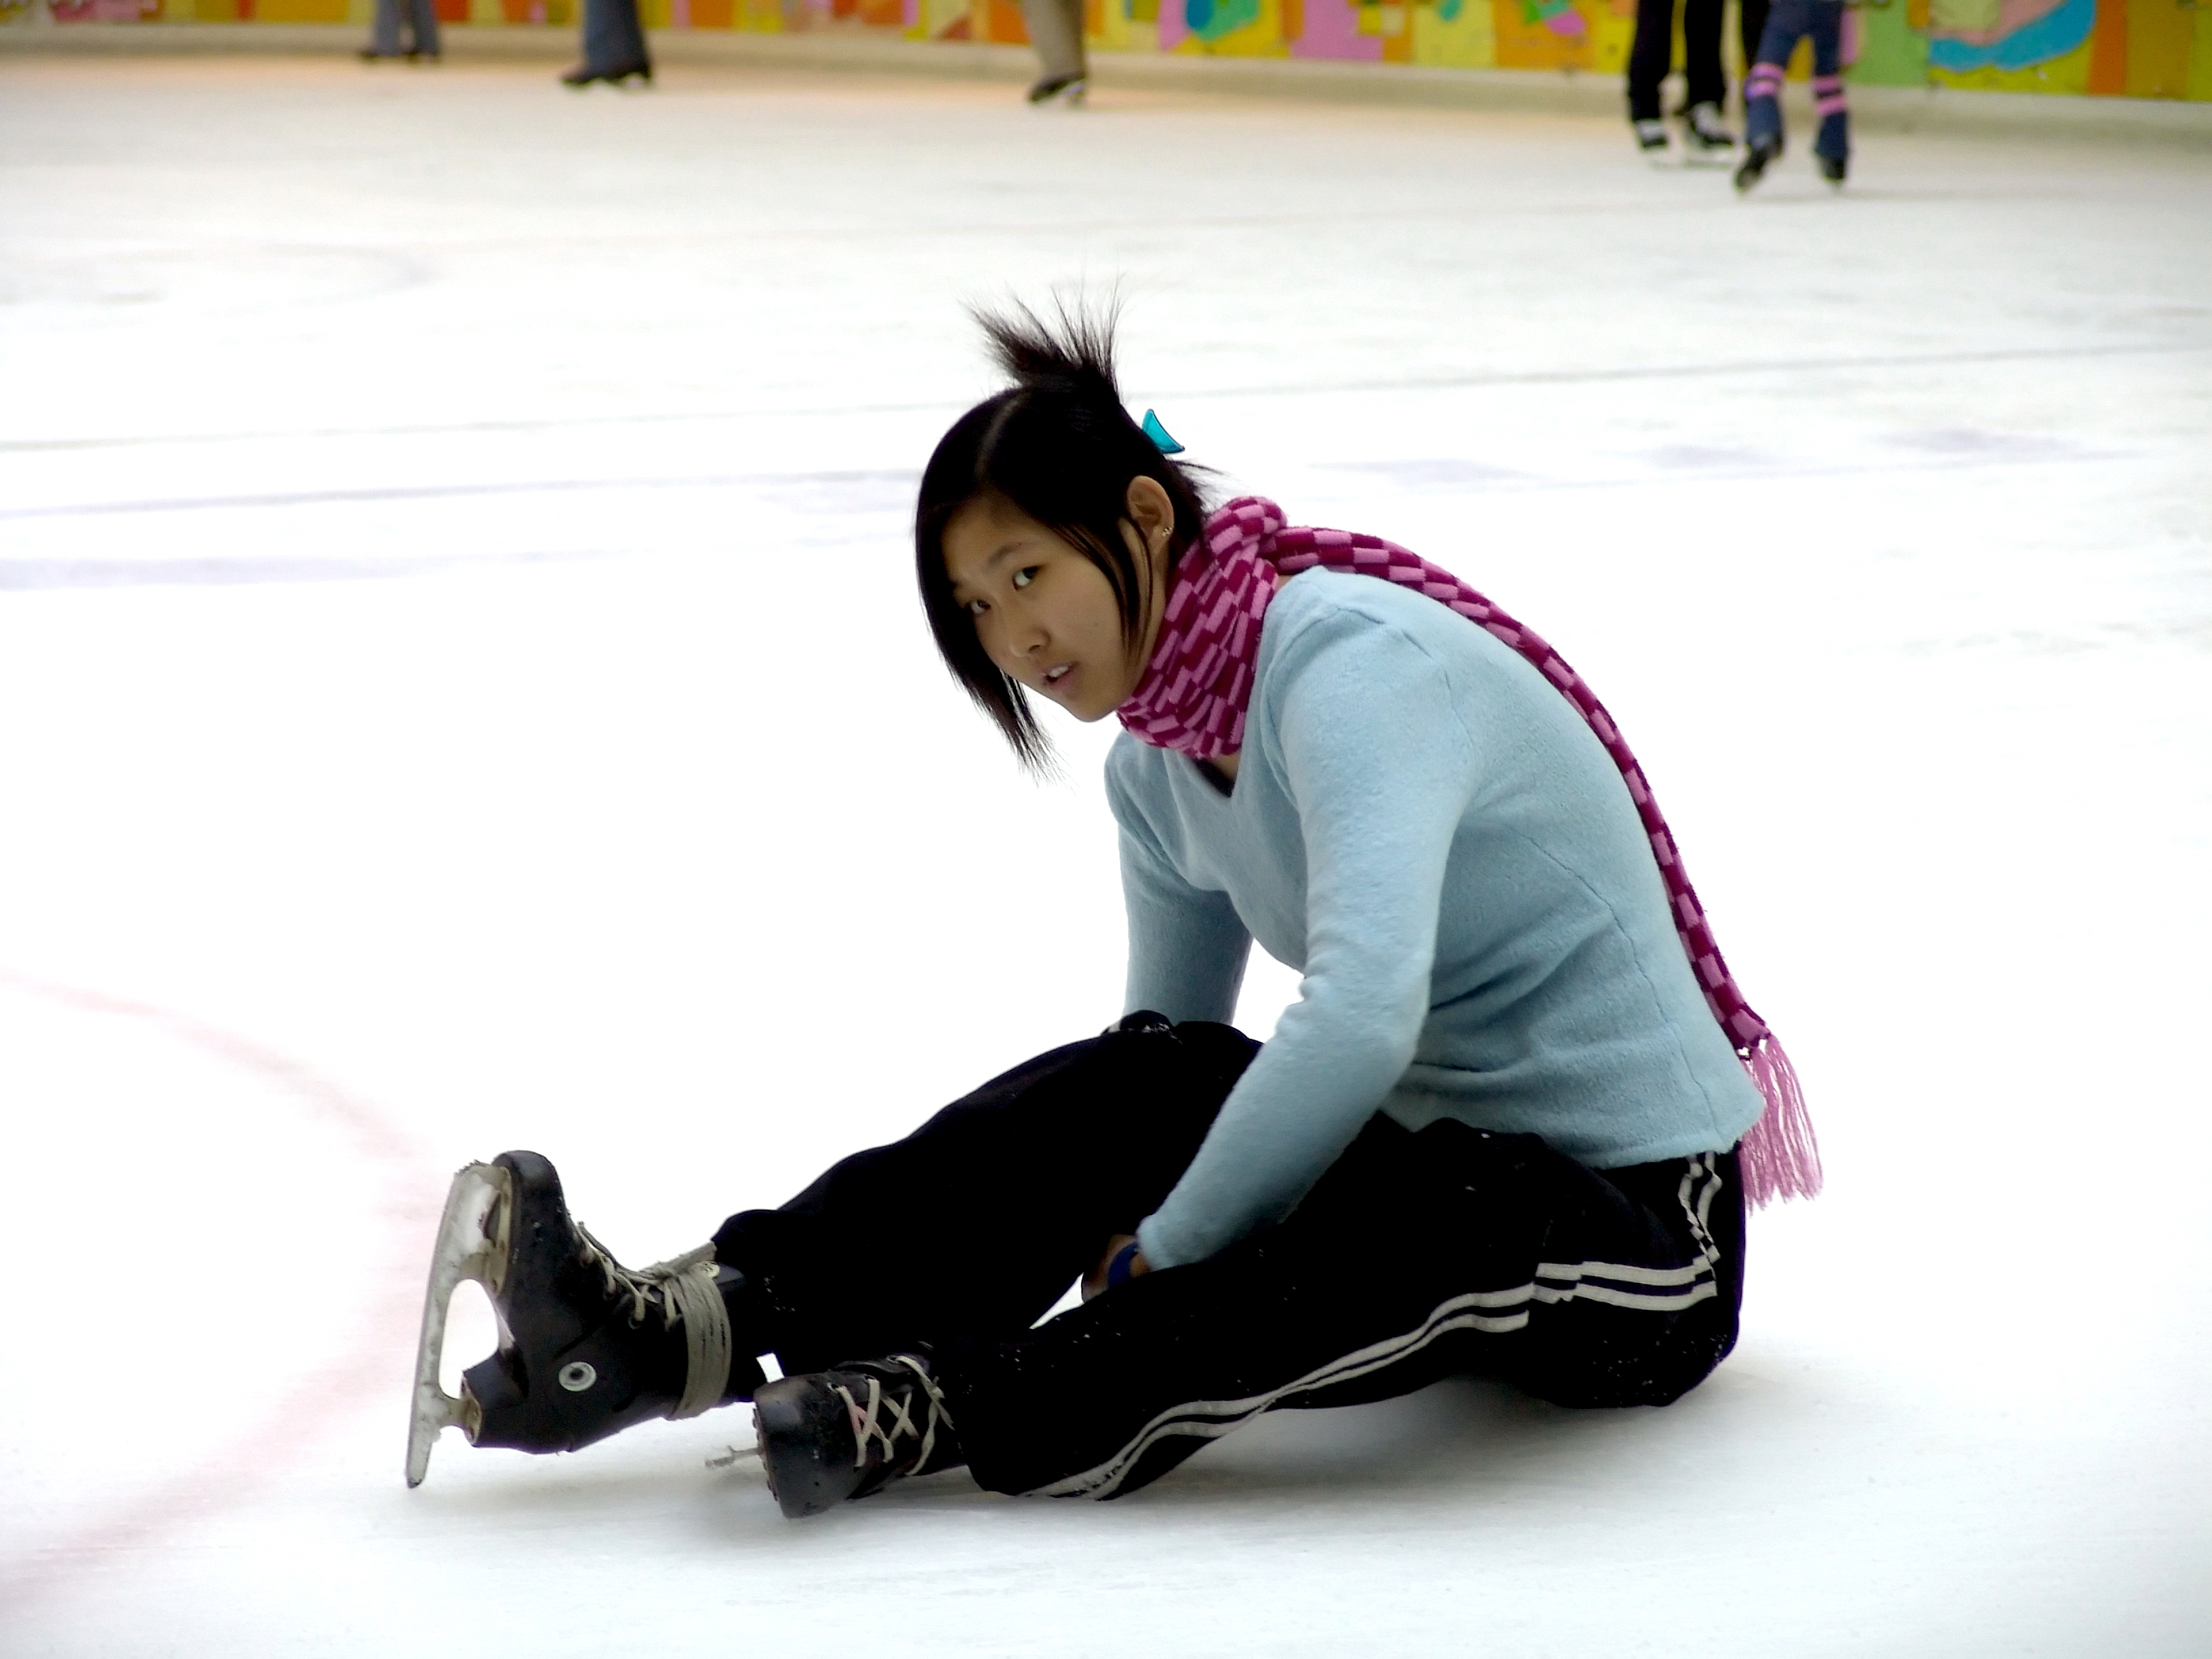 Girl_sitting_down_on_the_ice-rink_(01913)